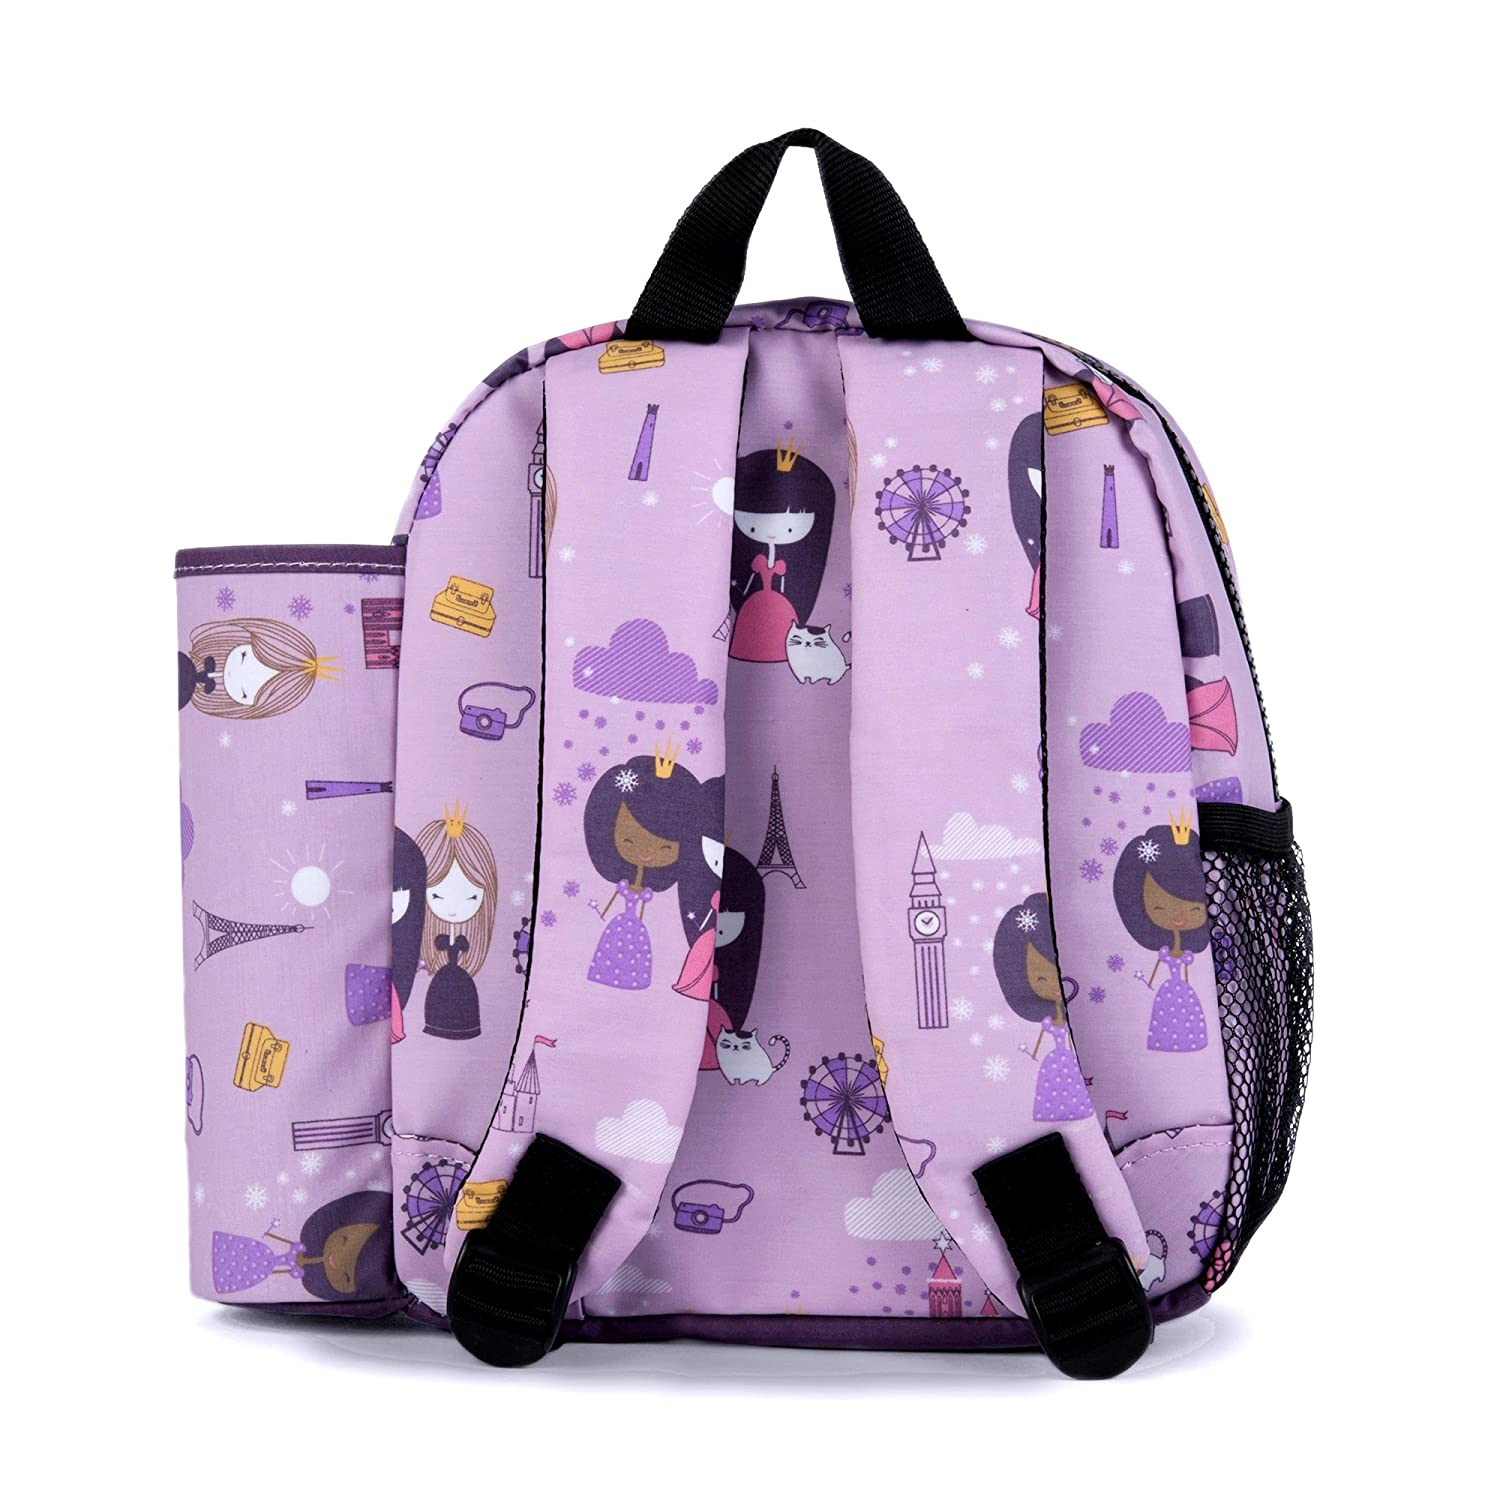 Traffic Urban Infant Preschool//Daycare Toddler Packie Backpack with Art Tube